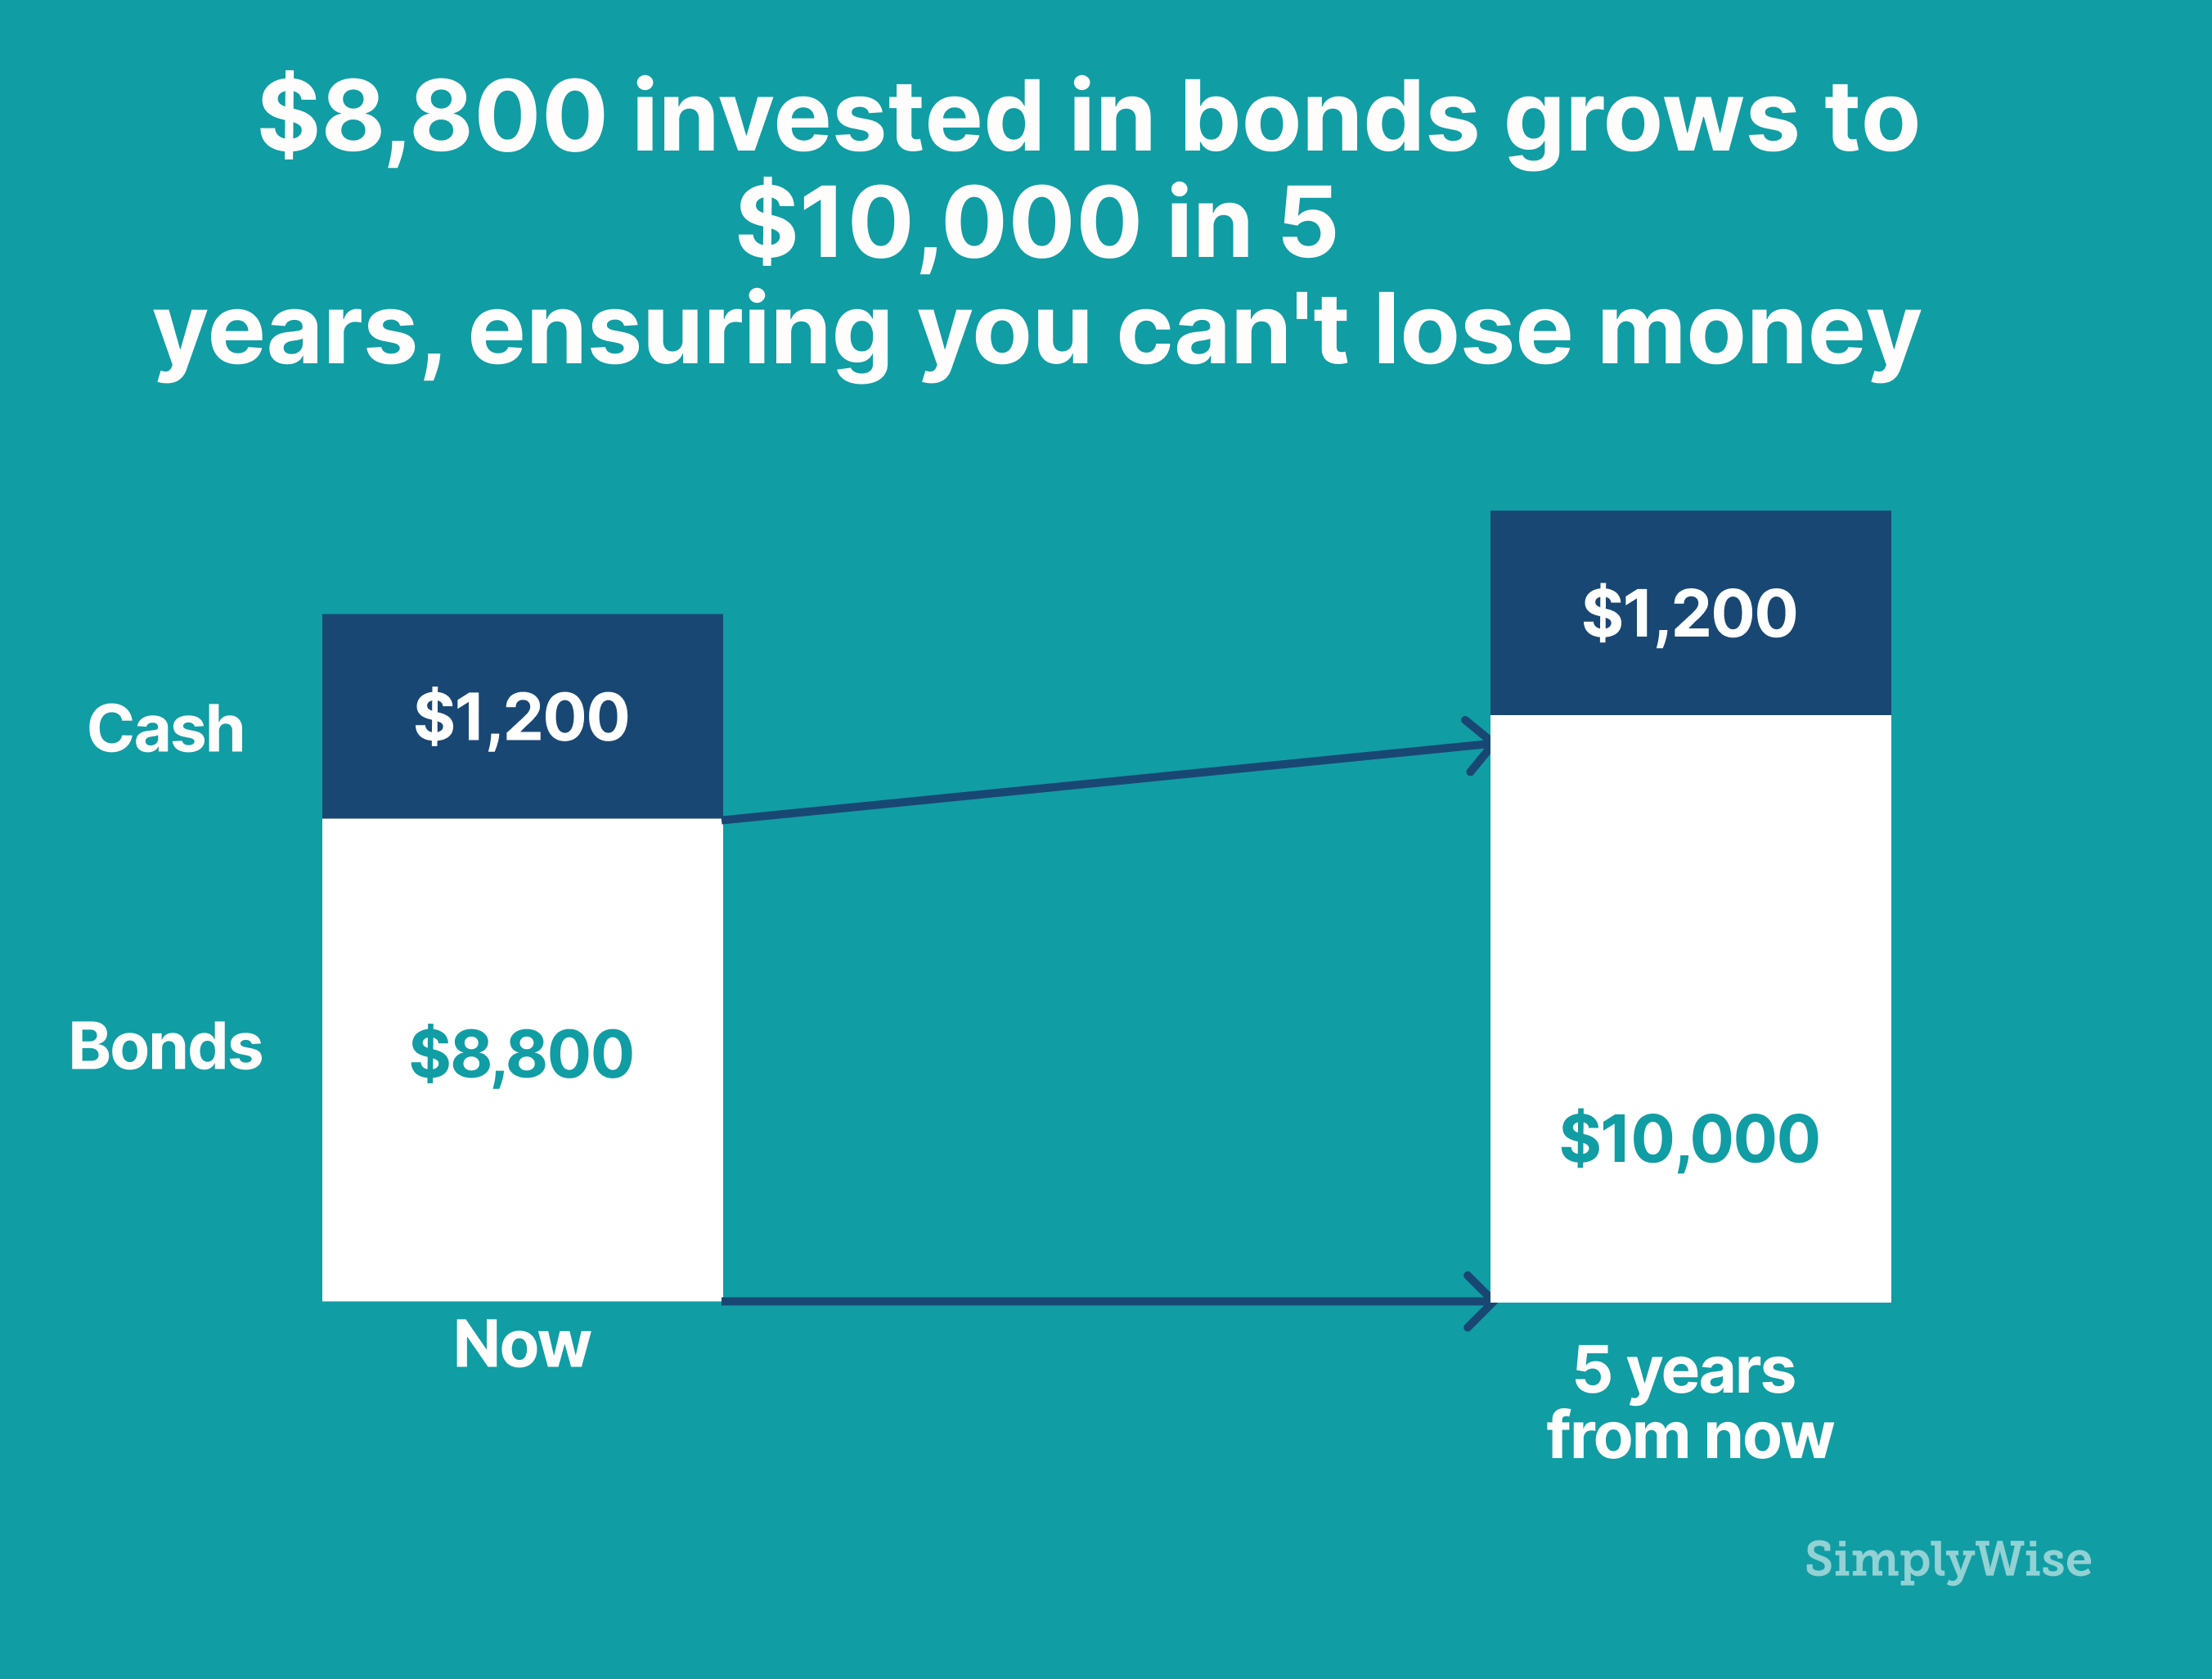 Simplywise invested in bonds 5 years